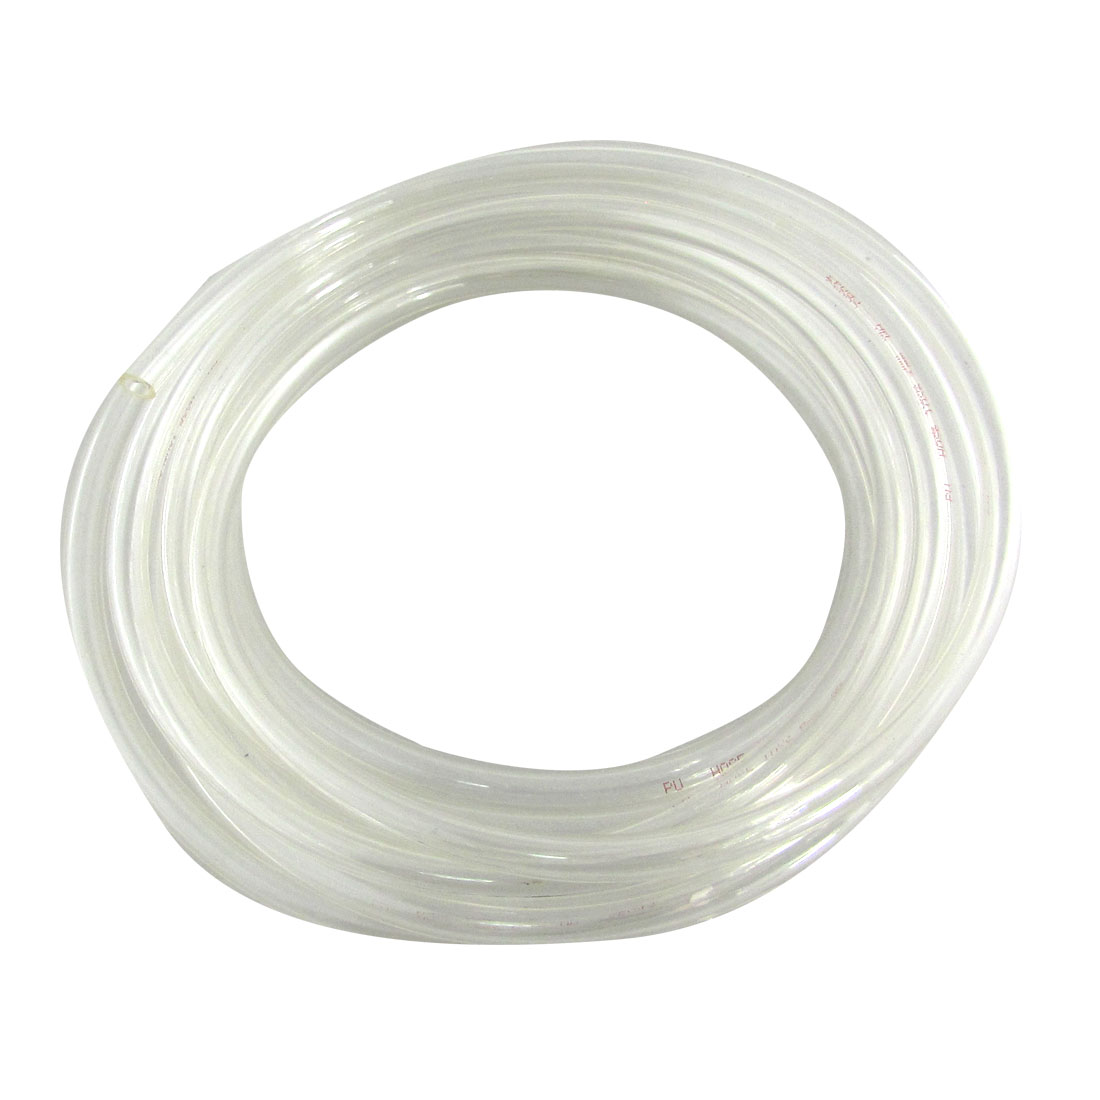 4M 13.1Ft 10mm x 6.5mm Pneumatic Air PU Hose Pipe Tube Clear